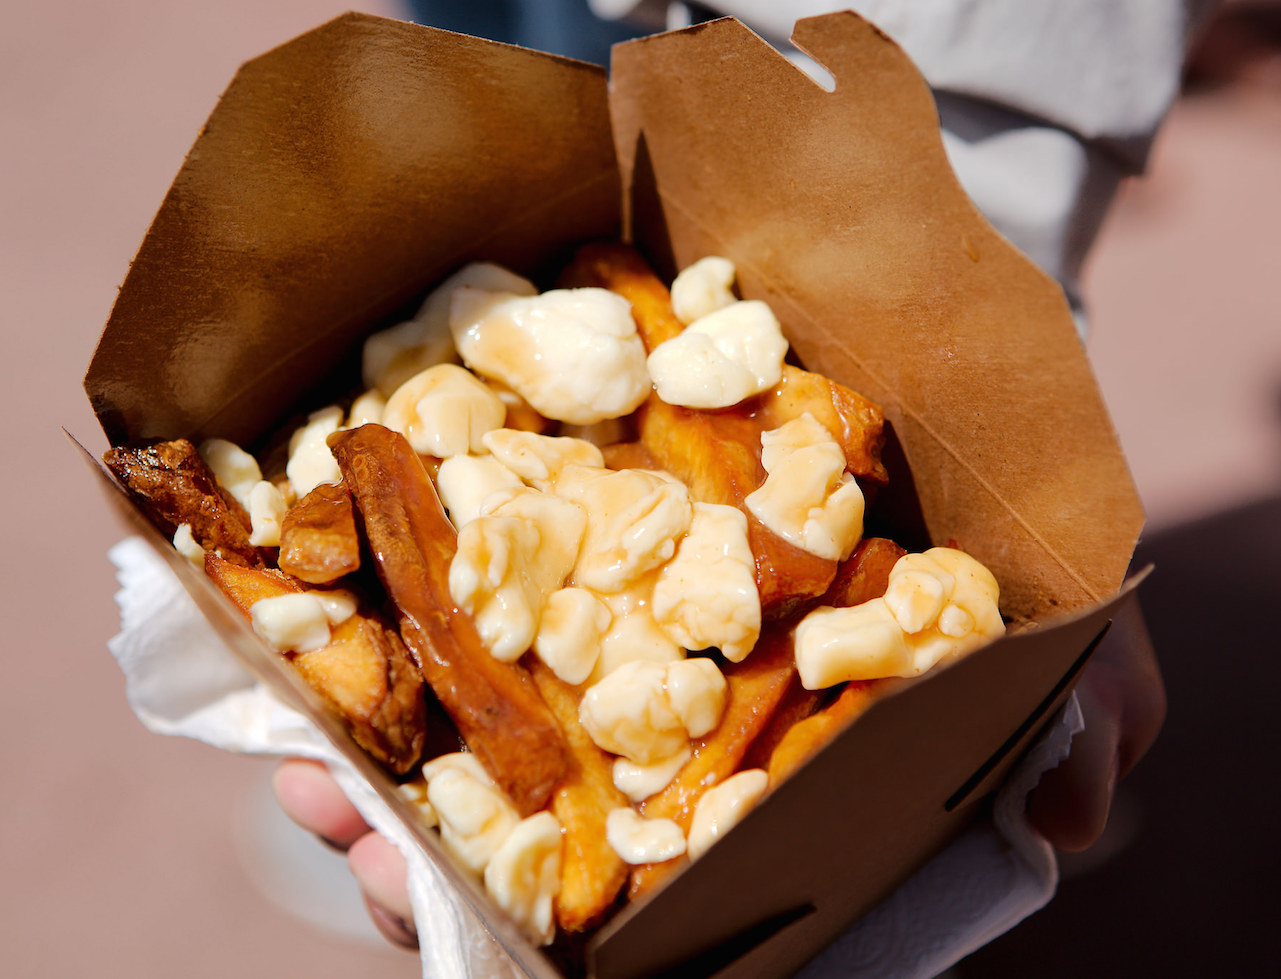 Peak poutine: How the messy trio of fries, curds, and gravy became Canada's favourite food